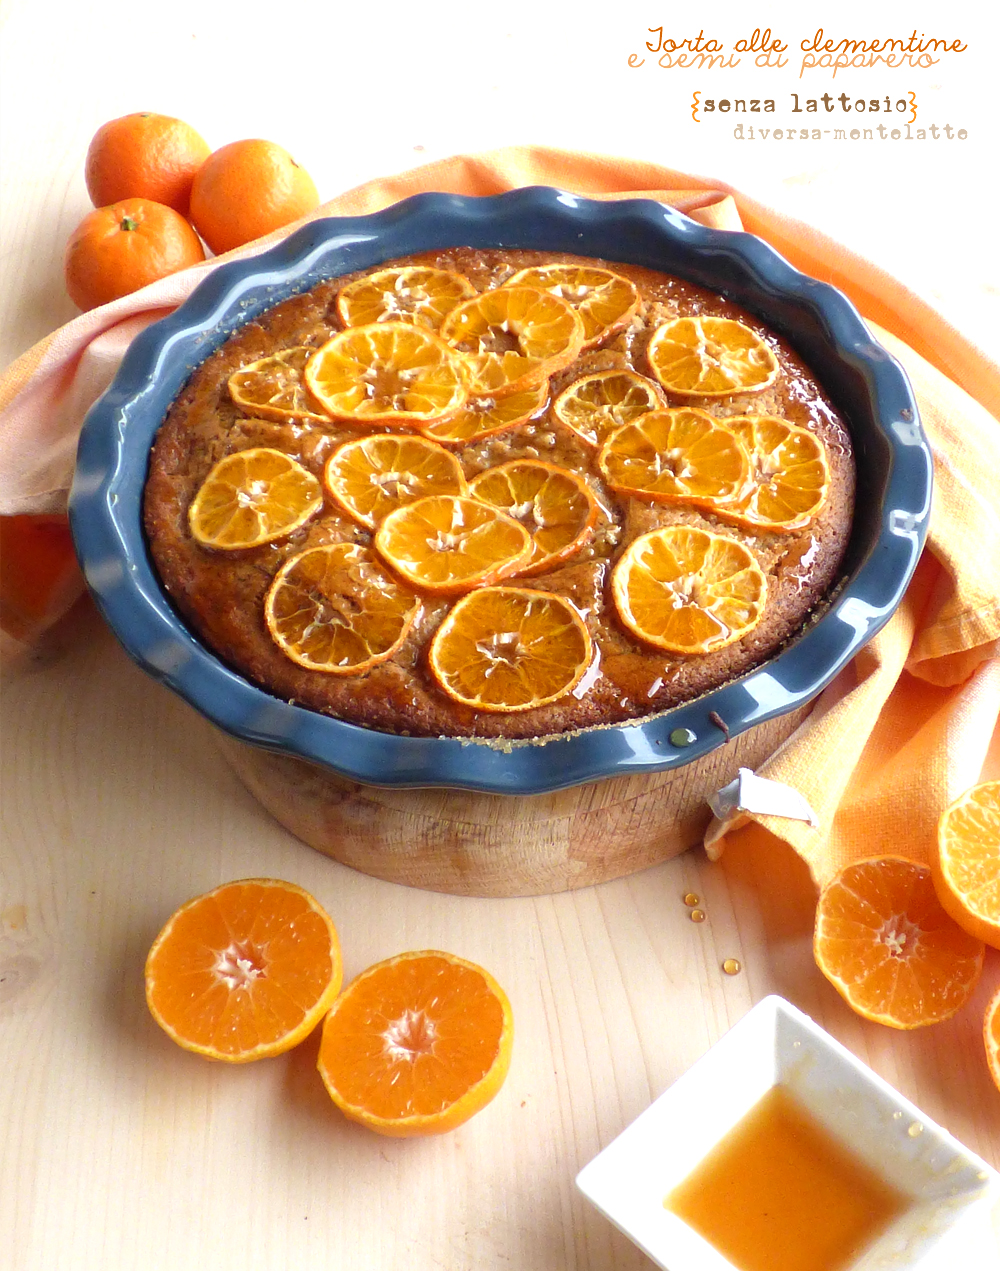 torta alle clementine lactose free